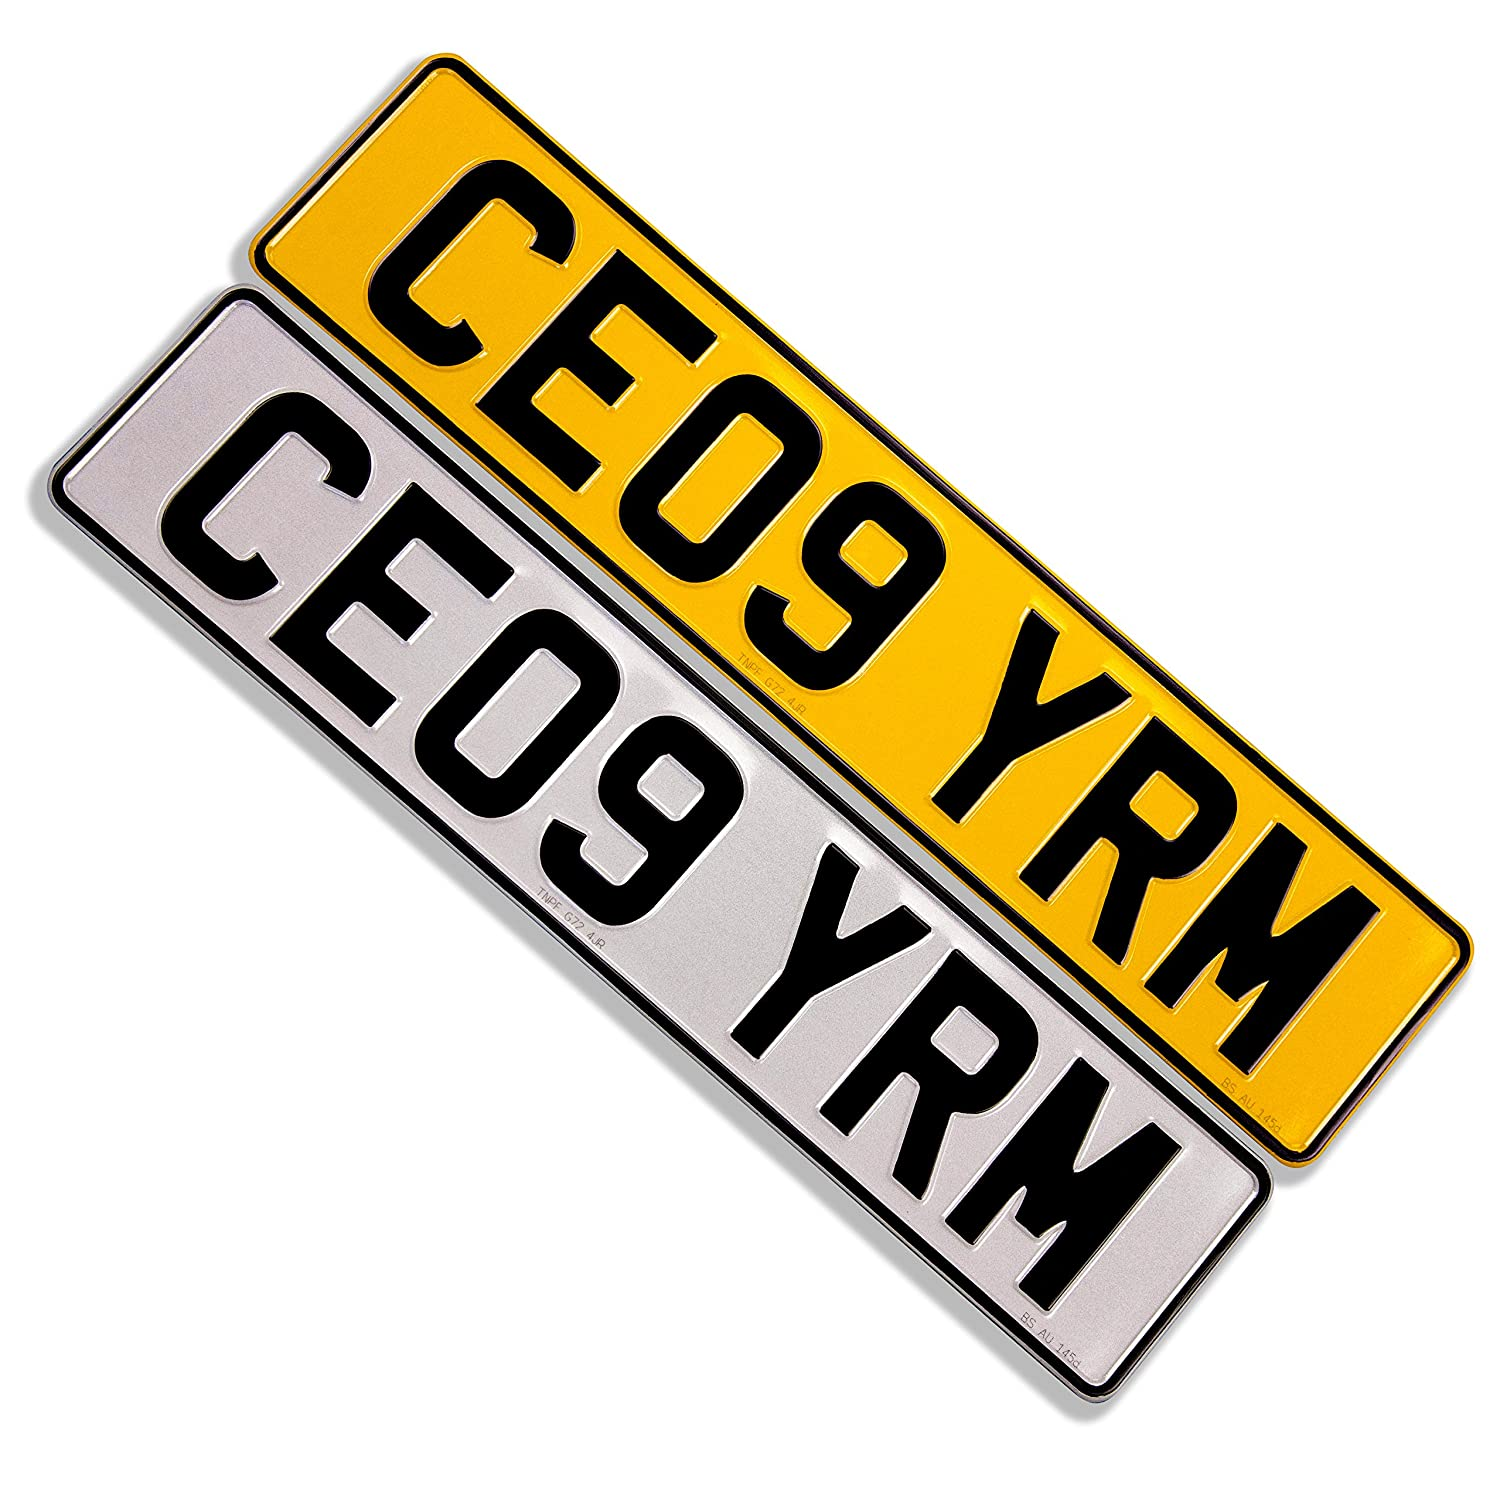 Set of Road Legal Reflective Pressed Metal Car Number ...